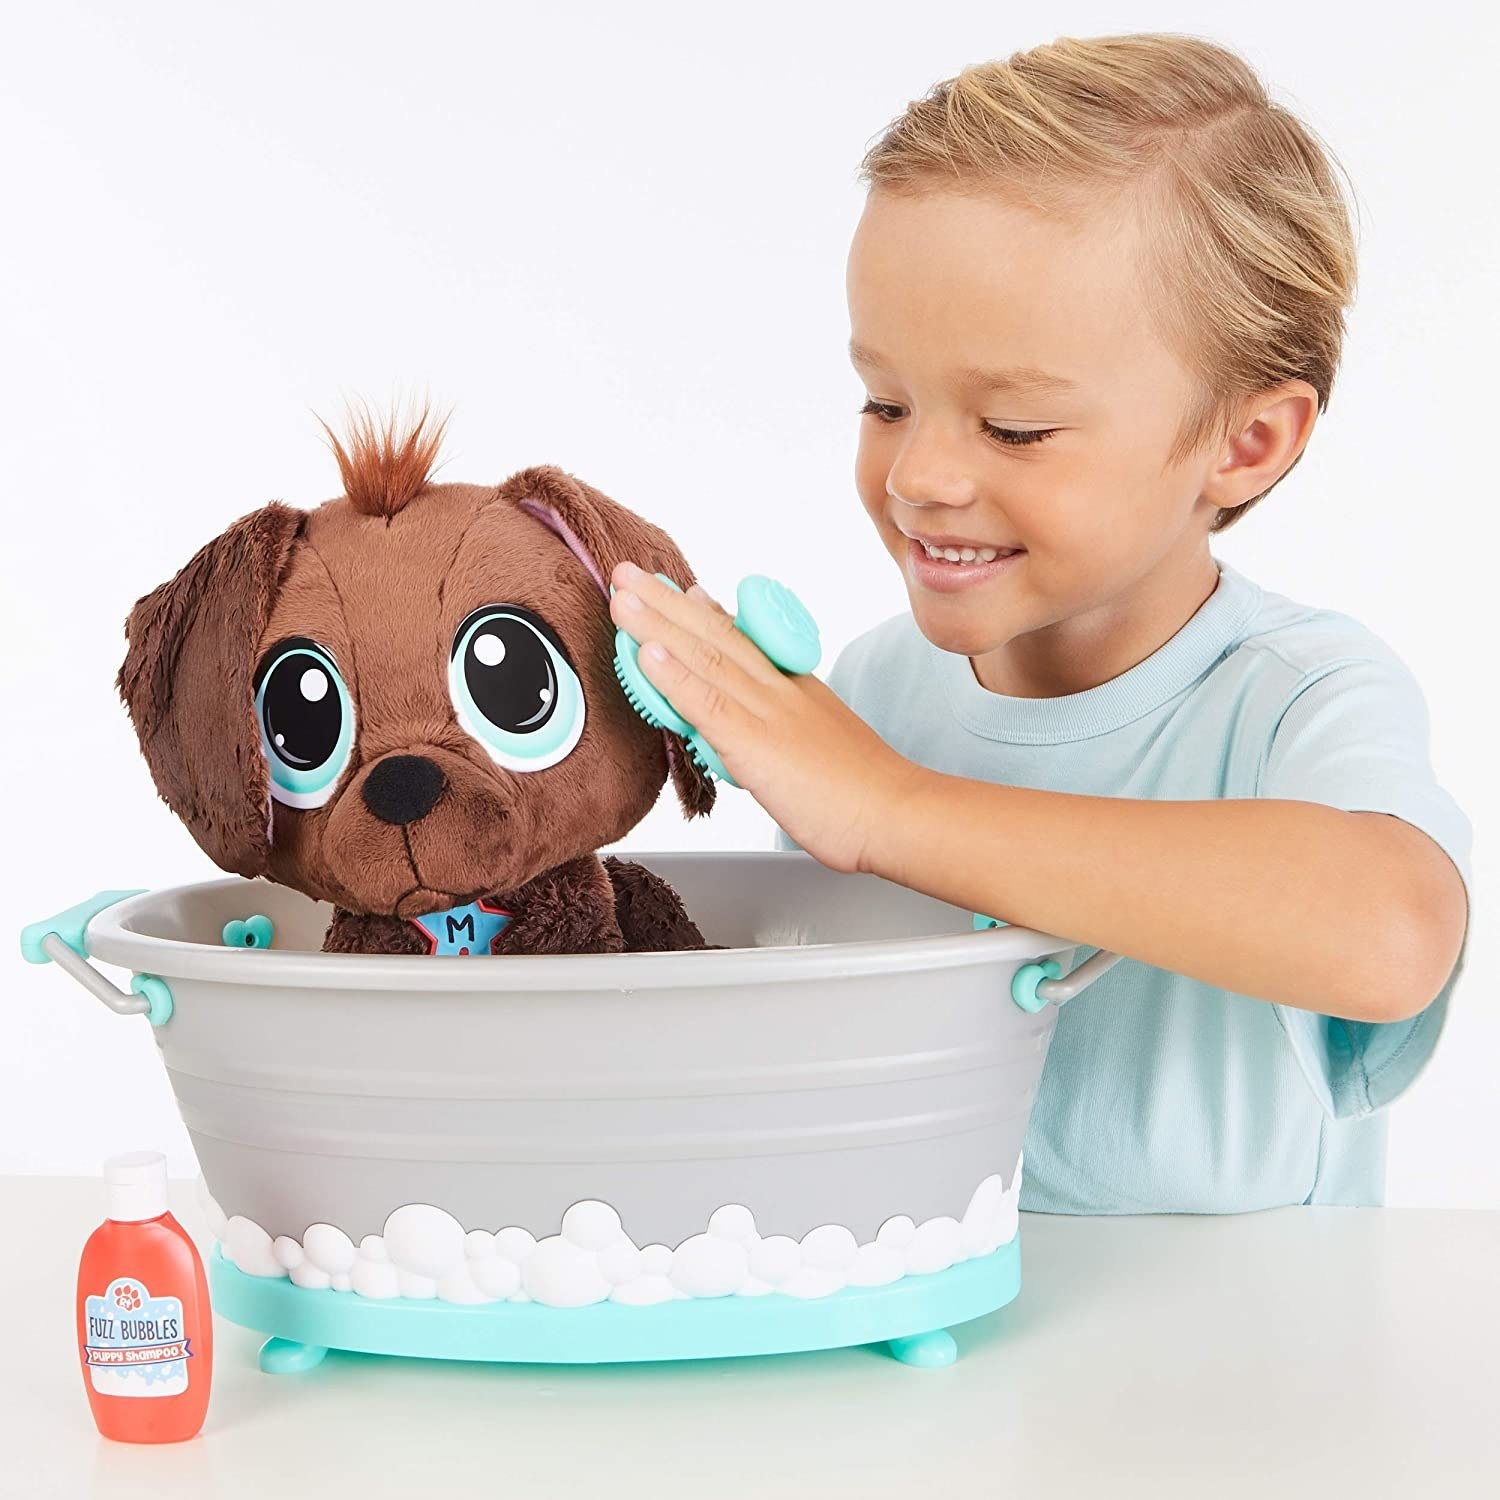 Child model playing with stuffed toy dog in the bathtub